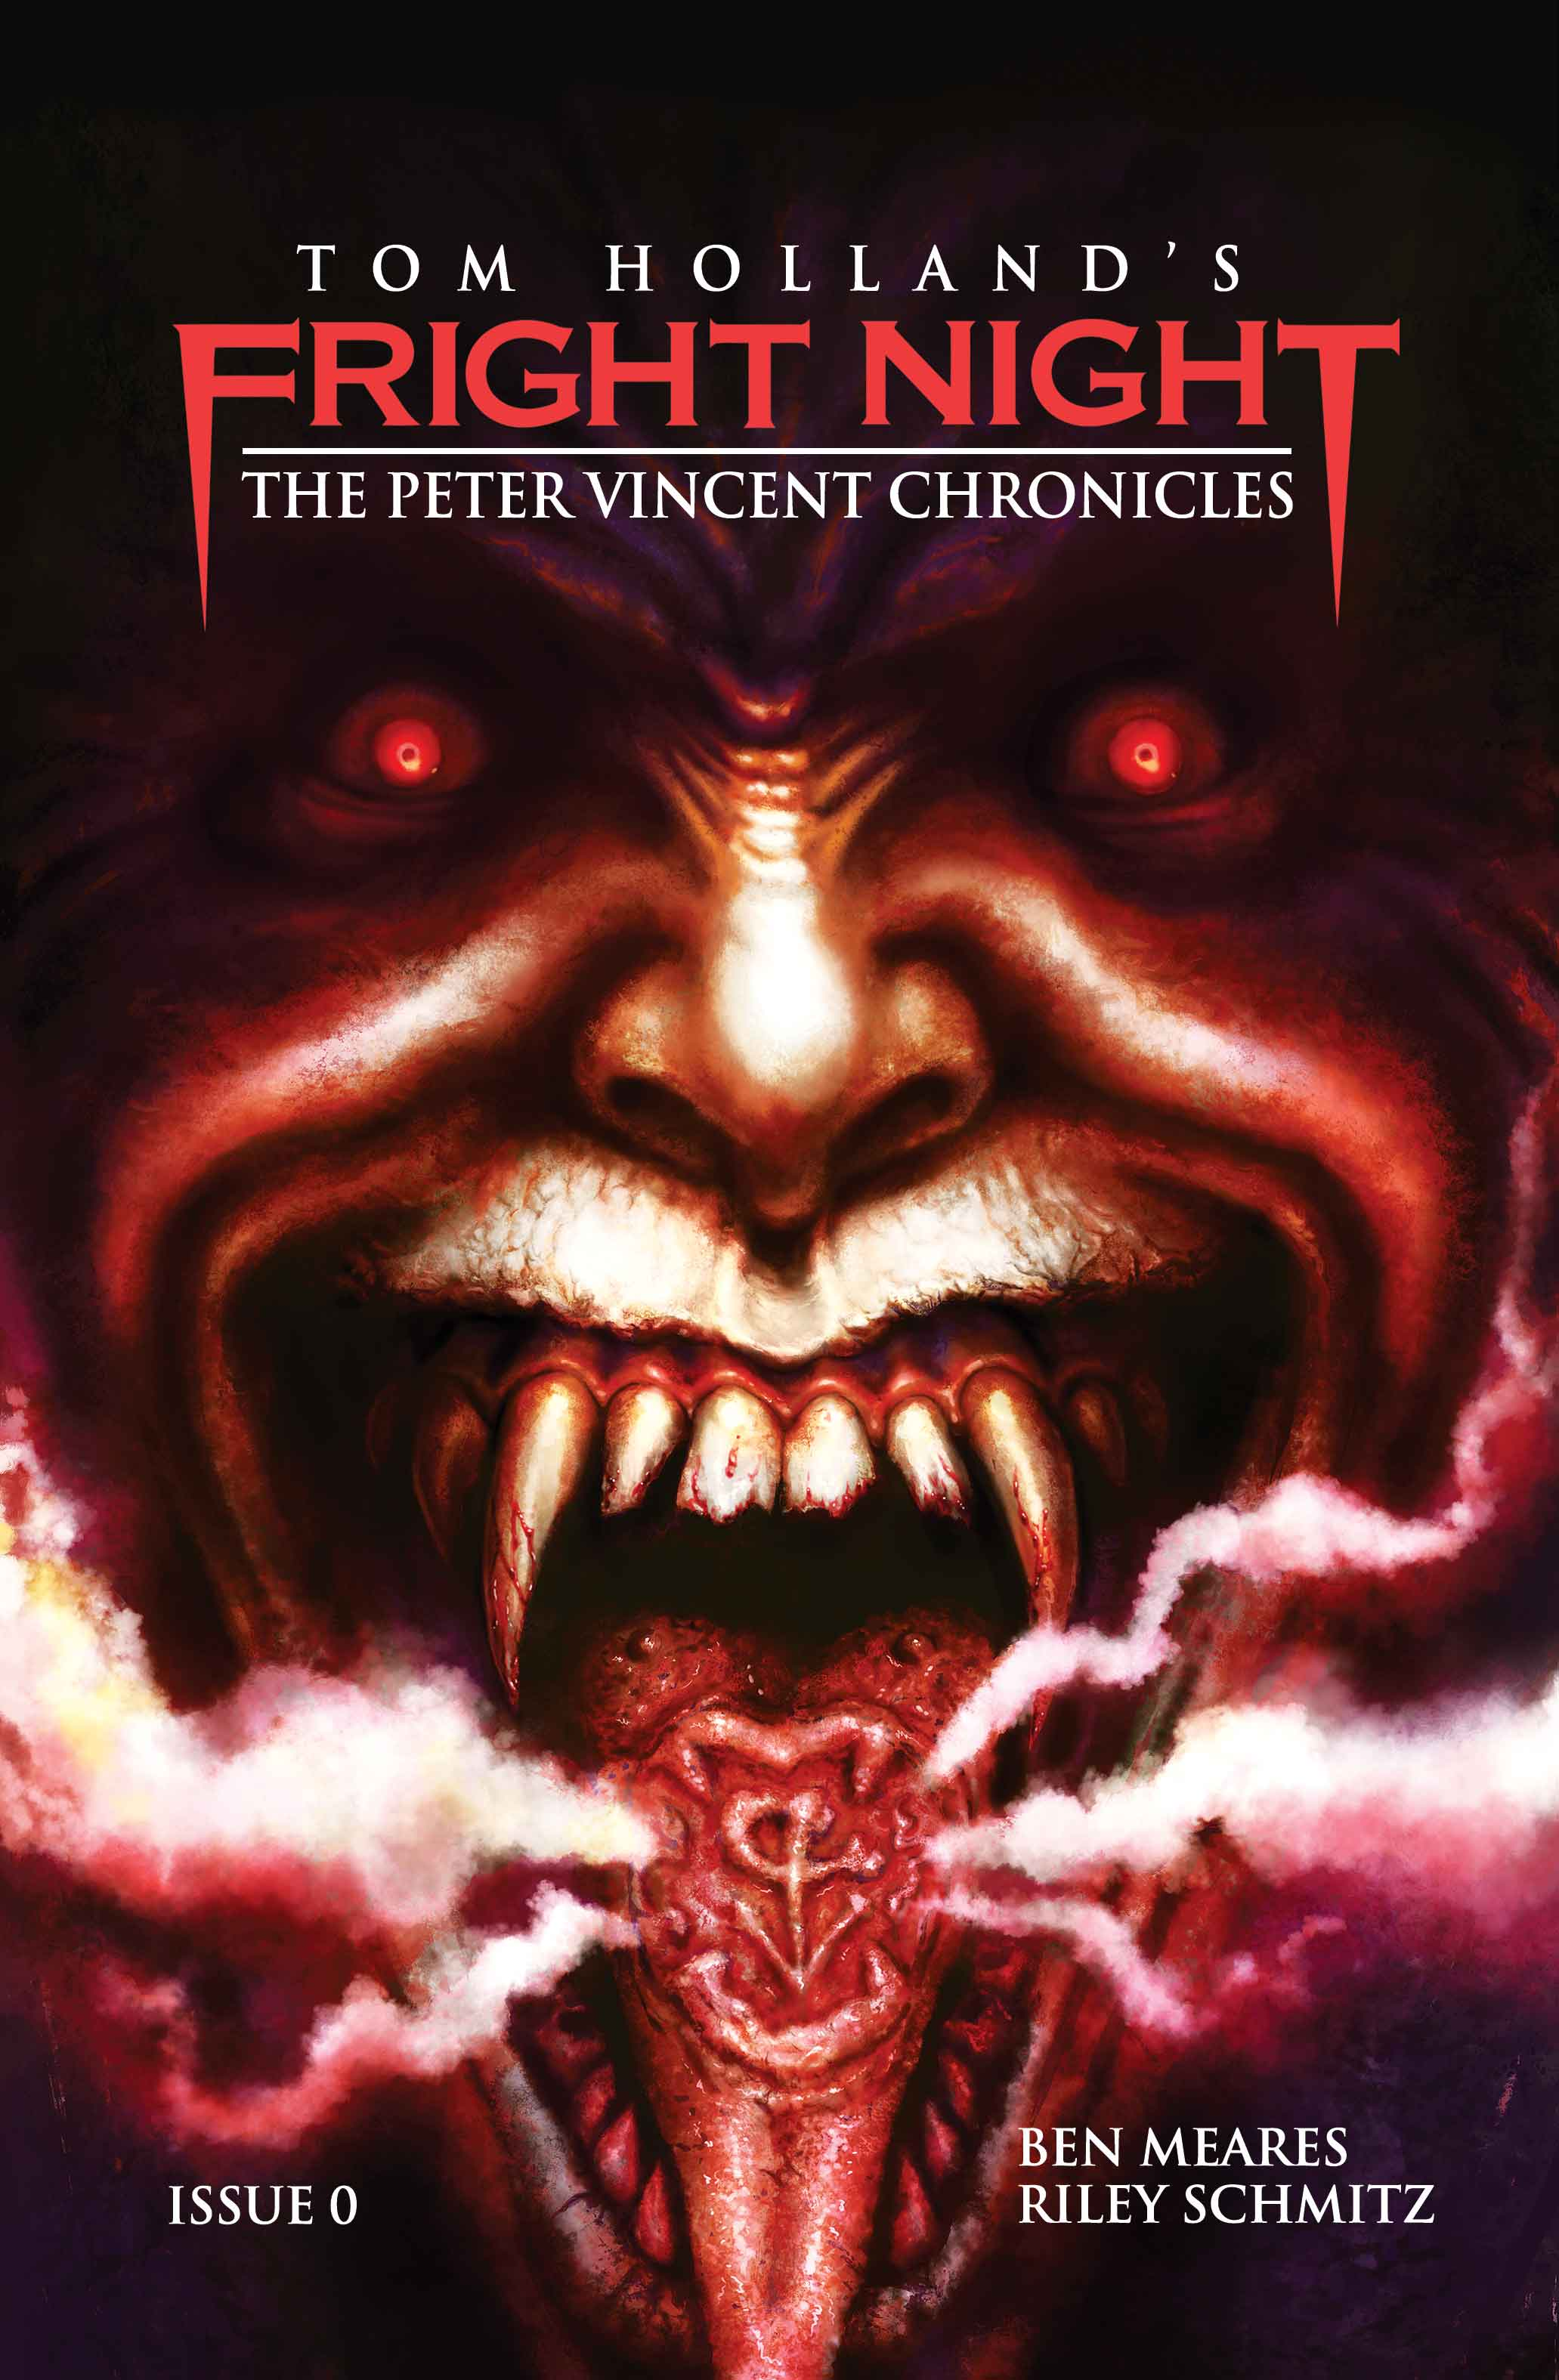 Fright Night: Peter Vincent Chronicles #0. Fright Night: Peter Vincent Chronicles, Fright Night